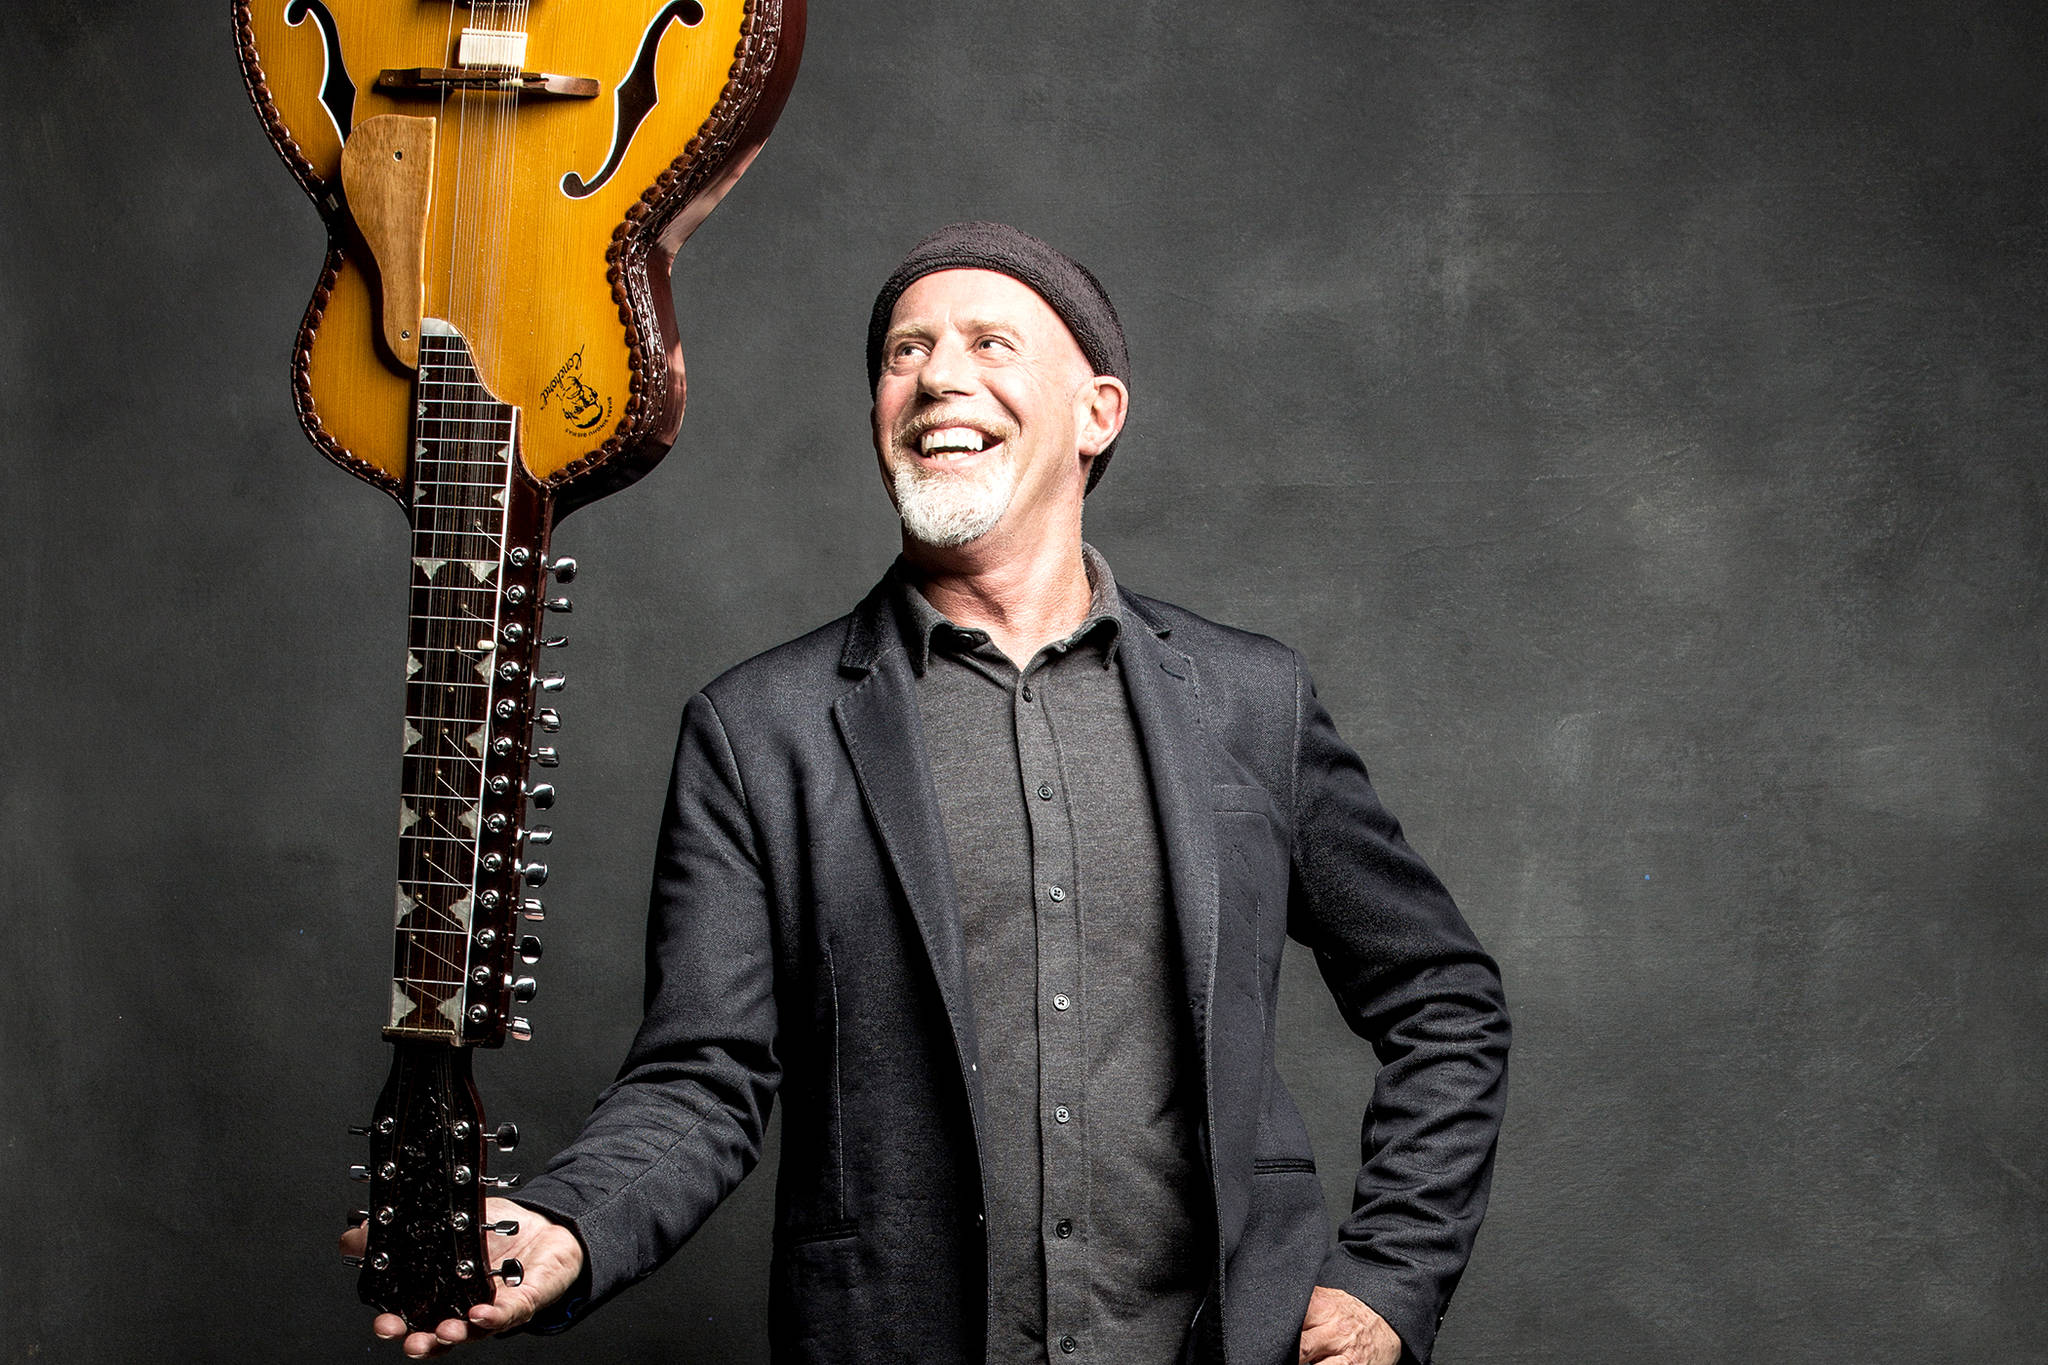 Multi-instrumentalist Harry Manx is slated to take the stage in Vernon for a show in July. (Shimon Karmel photo)